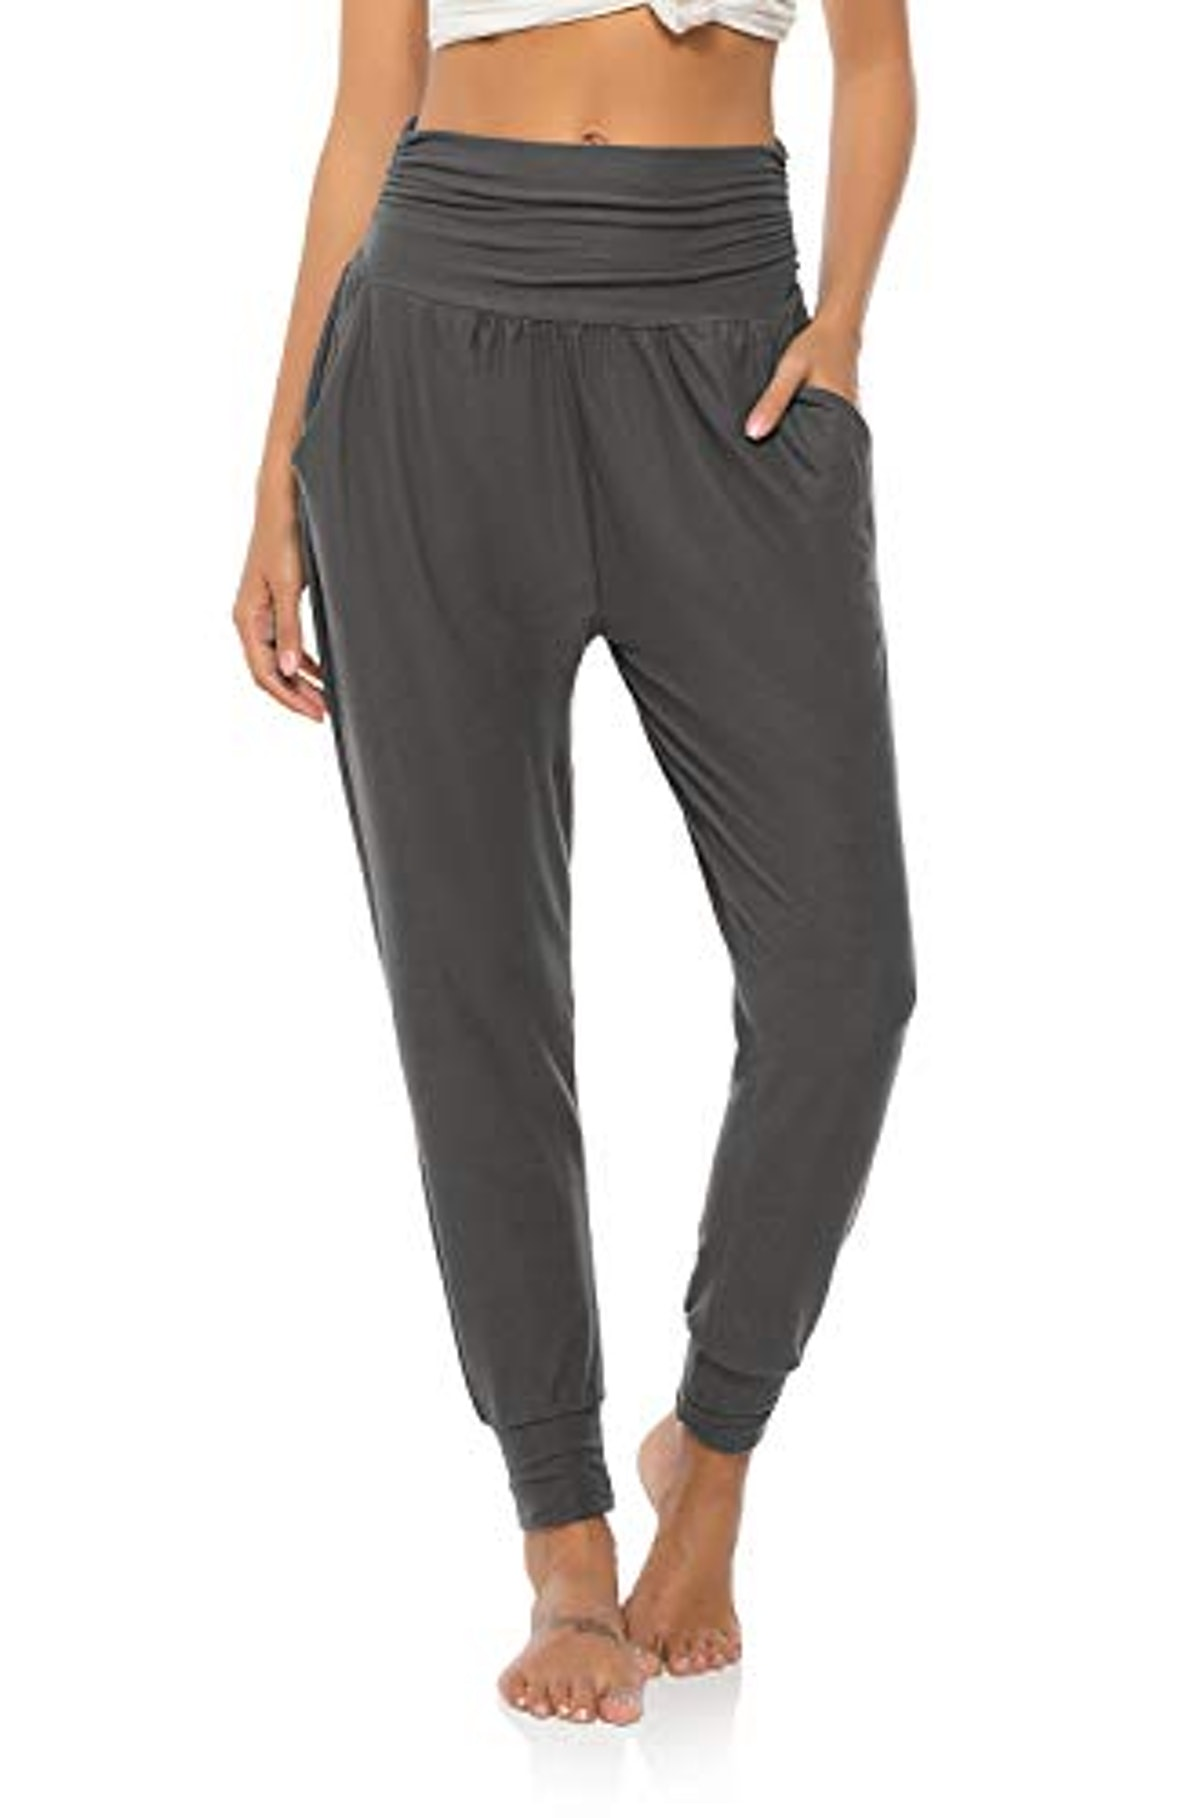 DIBAOLONG Sweatpants with Pockets